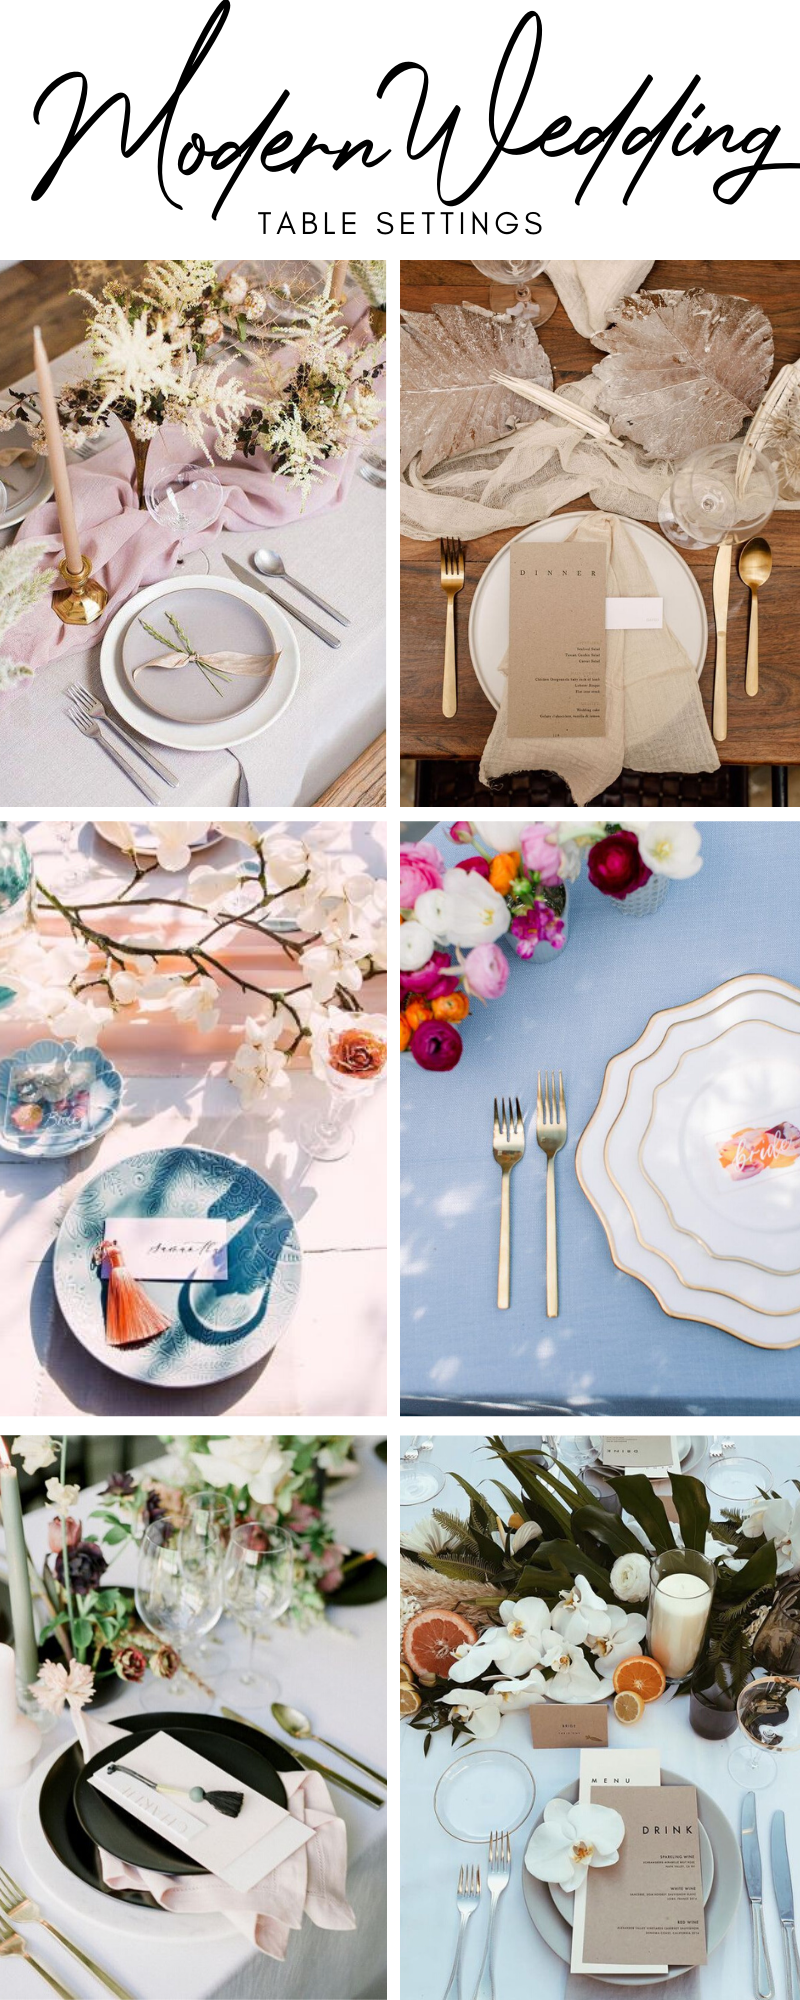 Modern Wedding Table Settings